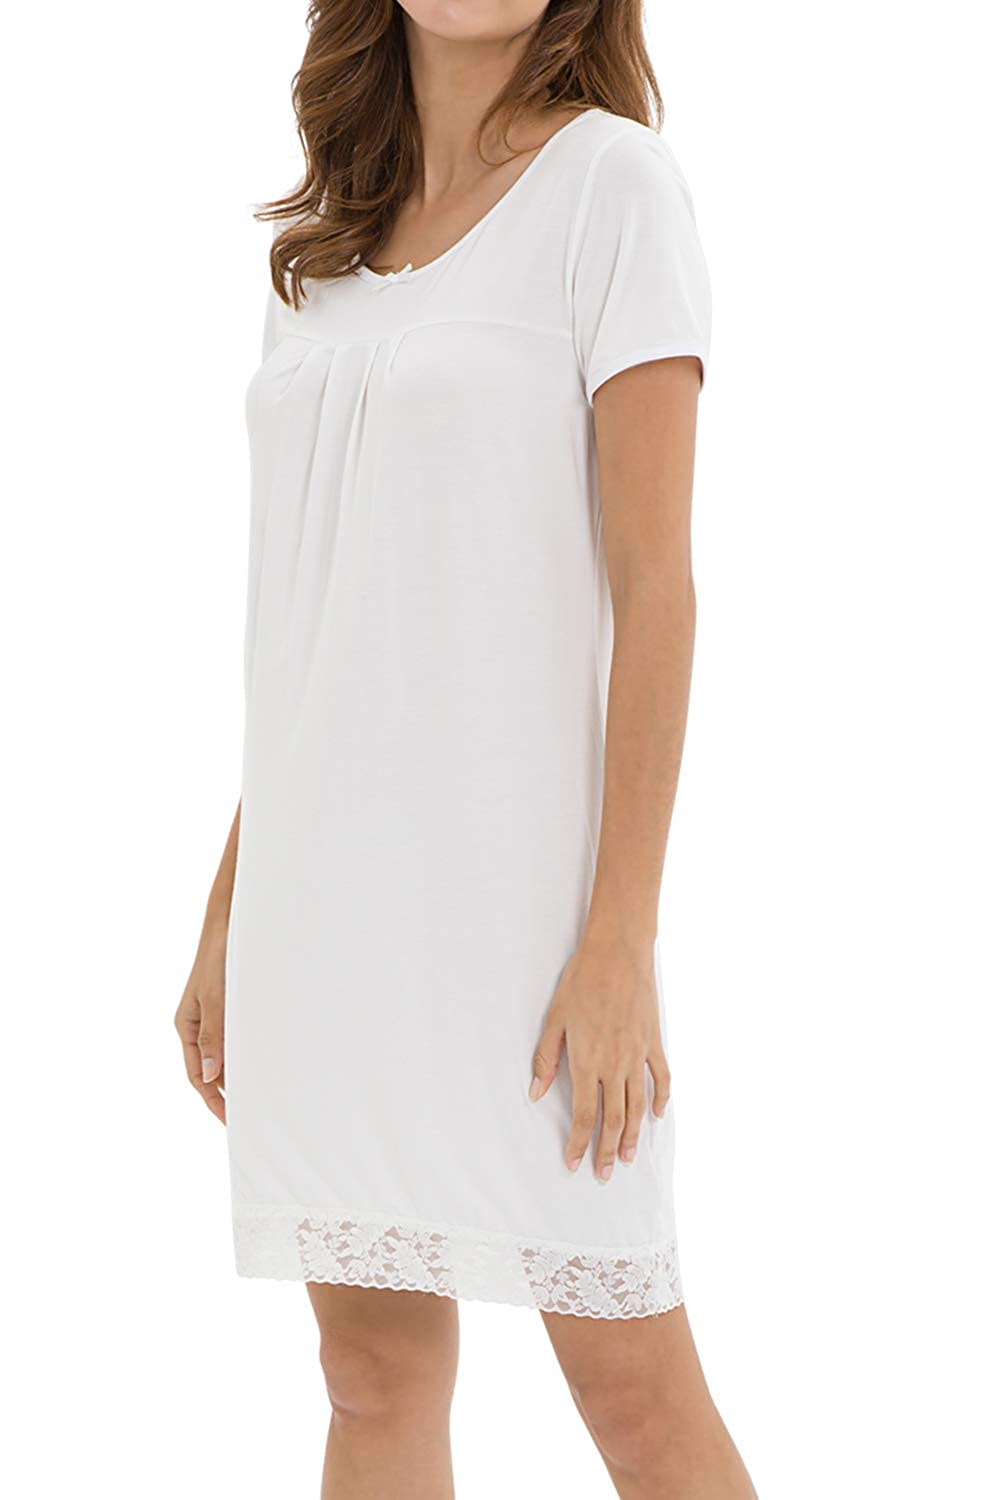 White WiWi Bamboo Lace Nightgowns Short Sleeve Nightshirts for Women